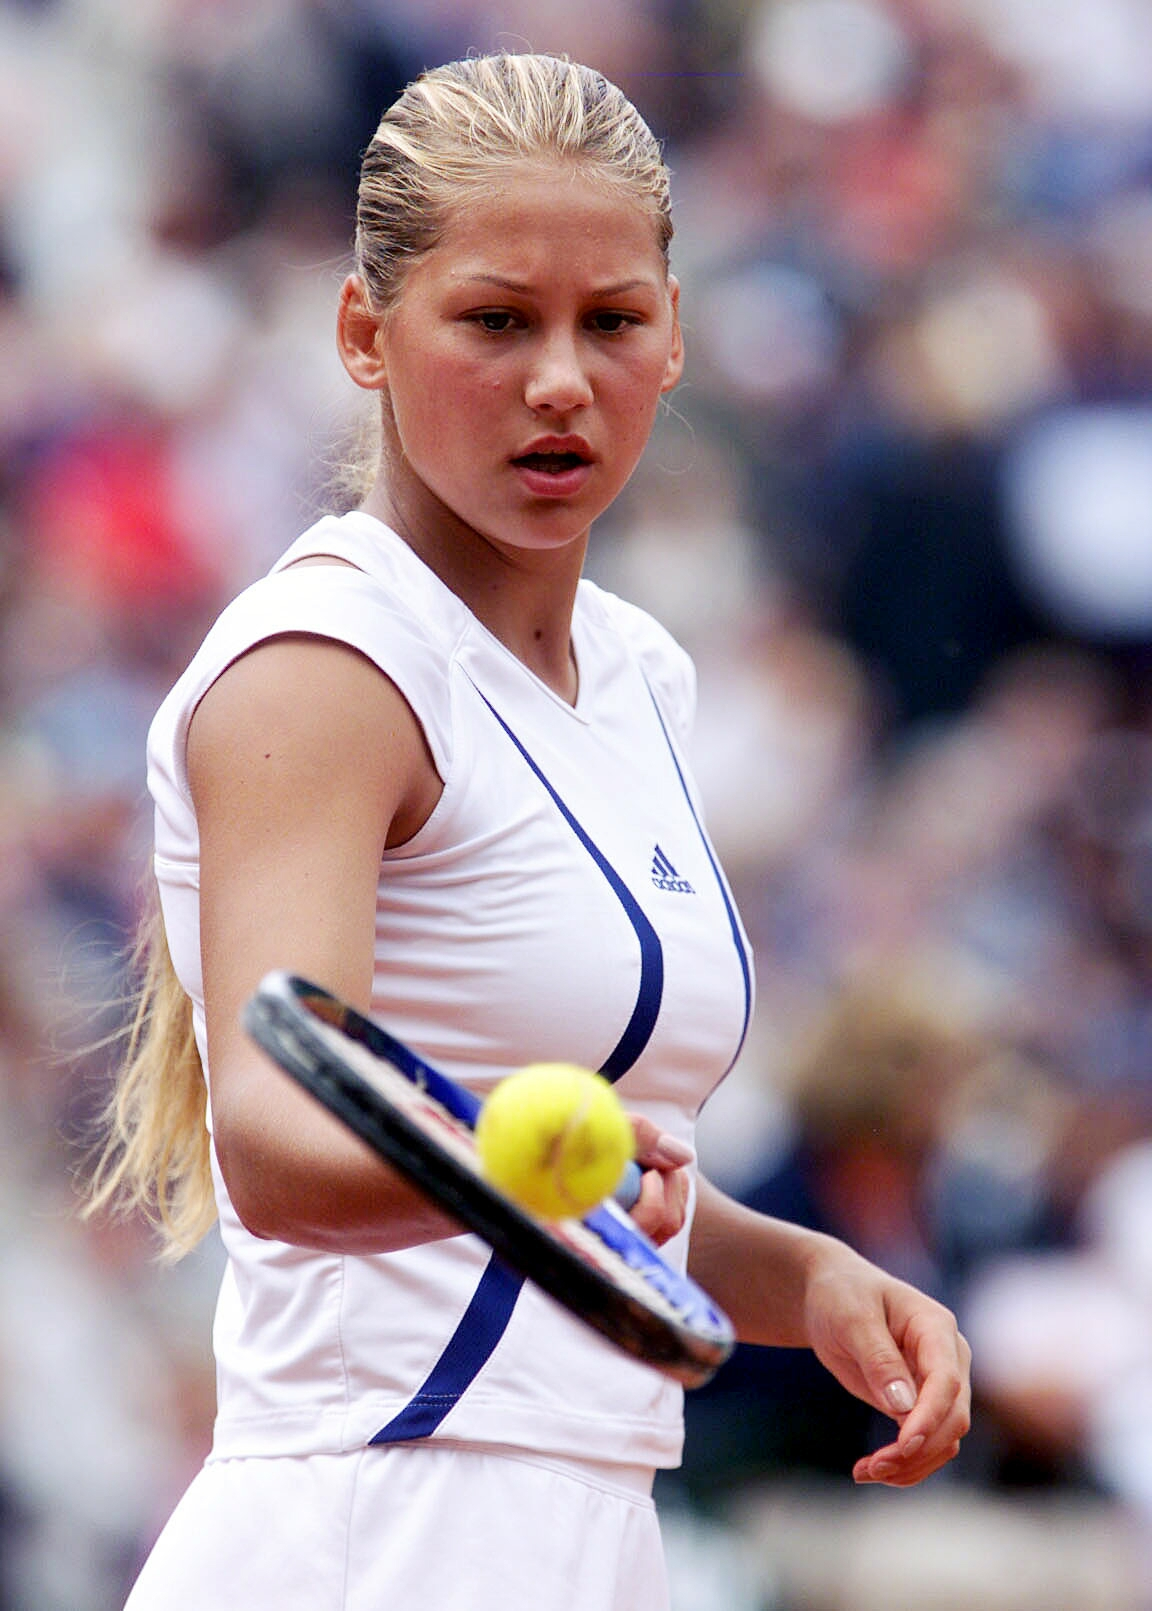 Anna Kournikova photo #606983